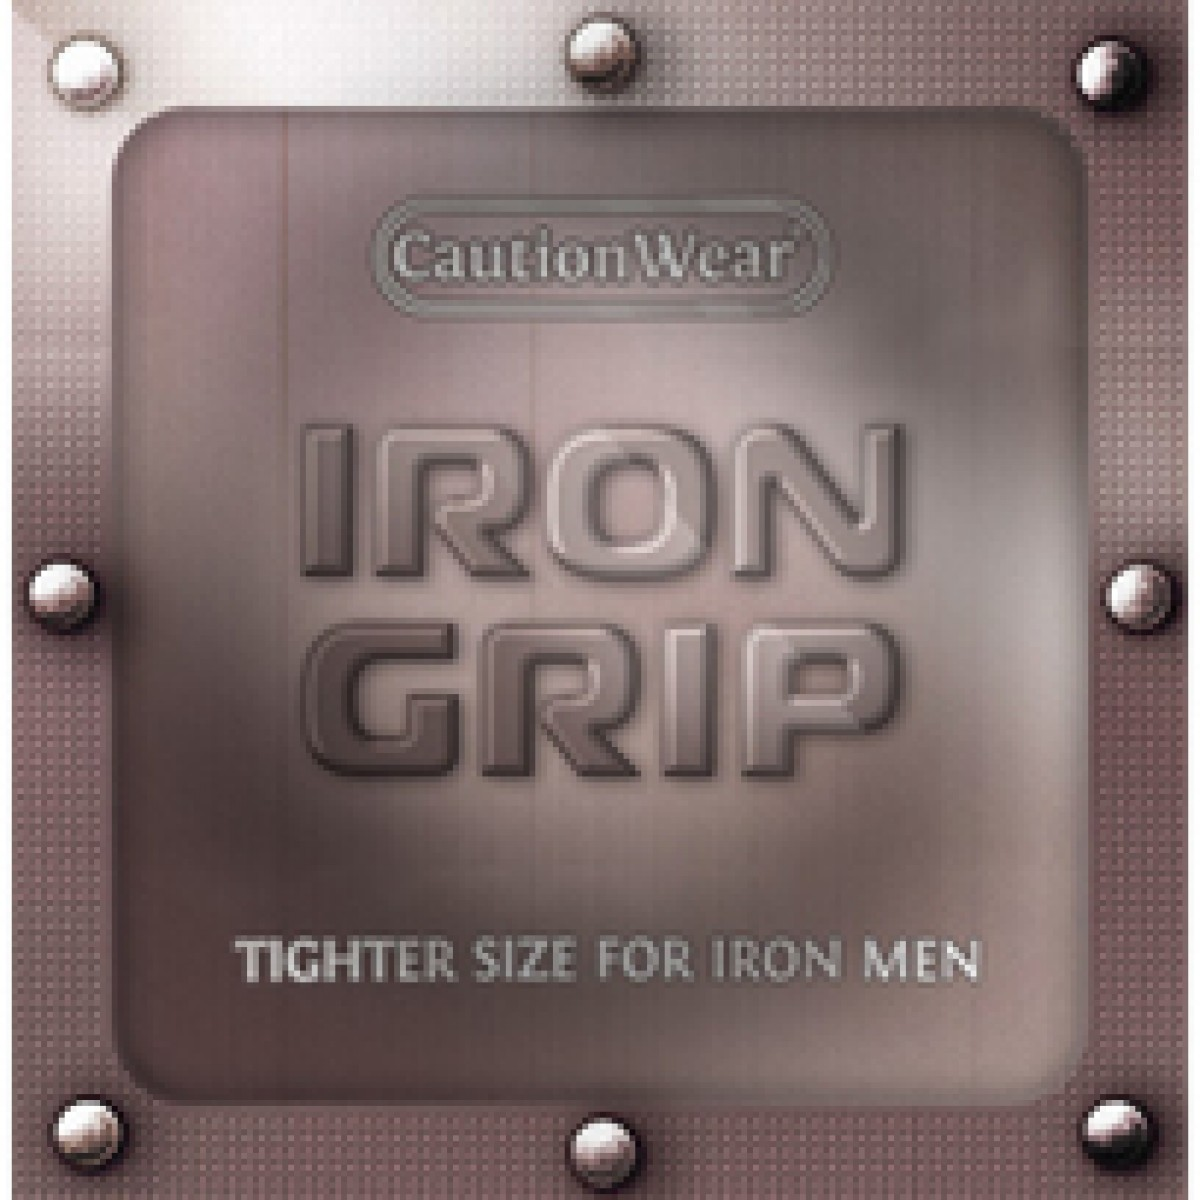 Caution Wear Iron Grip Condoms